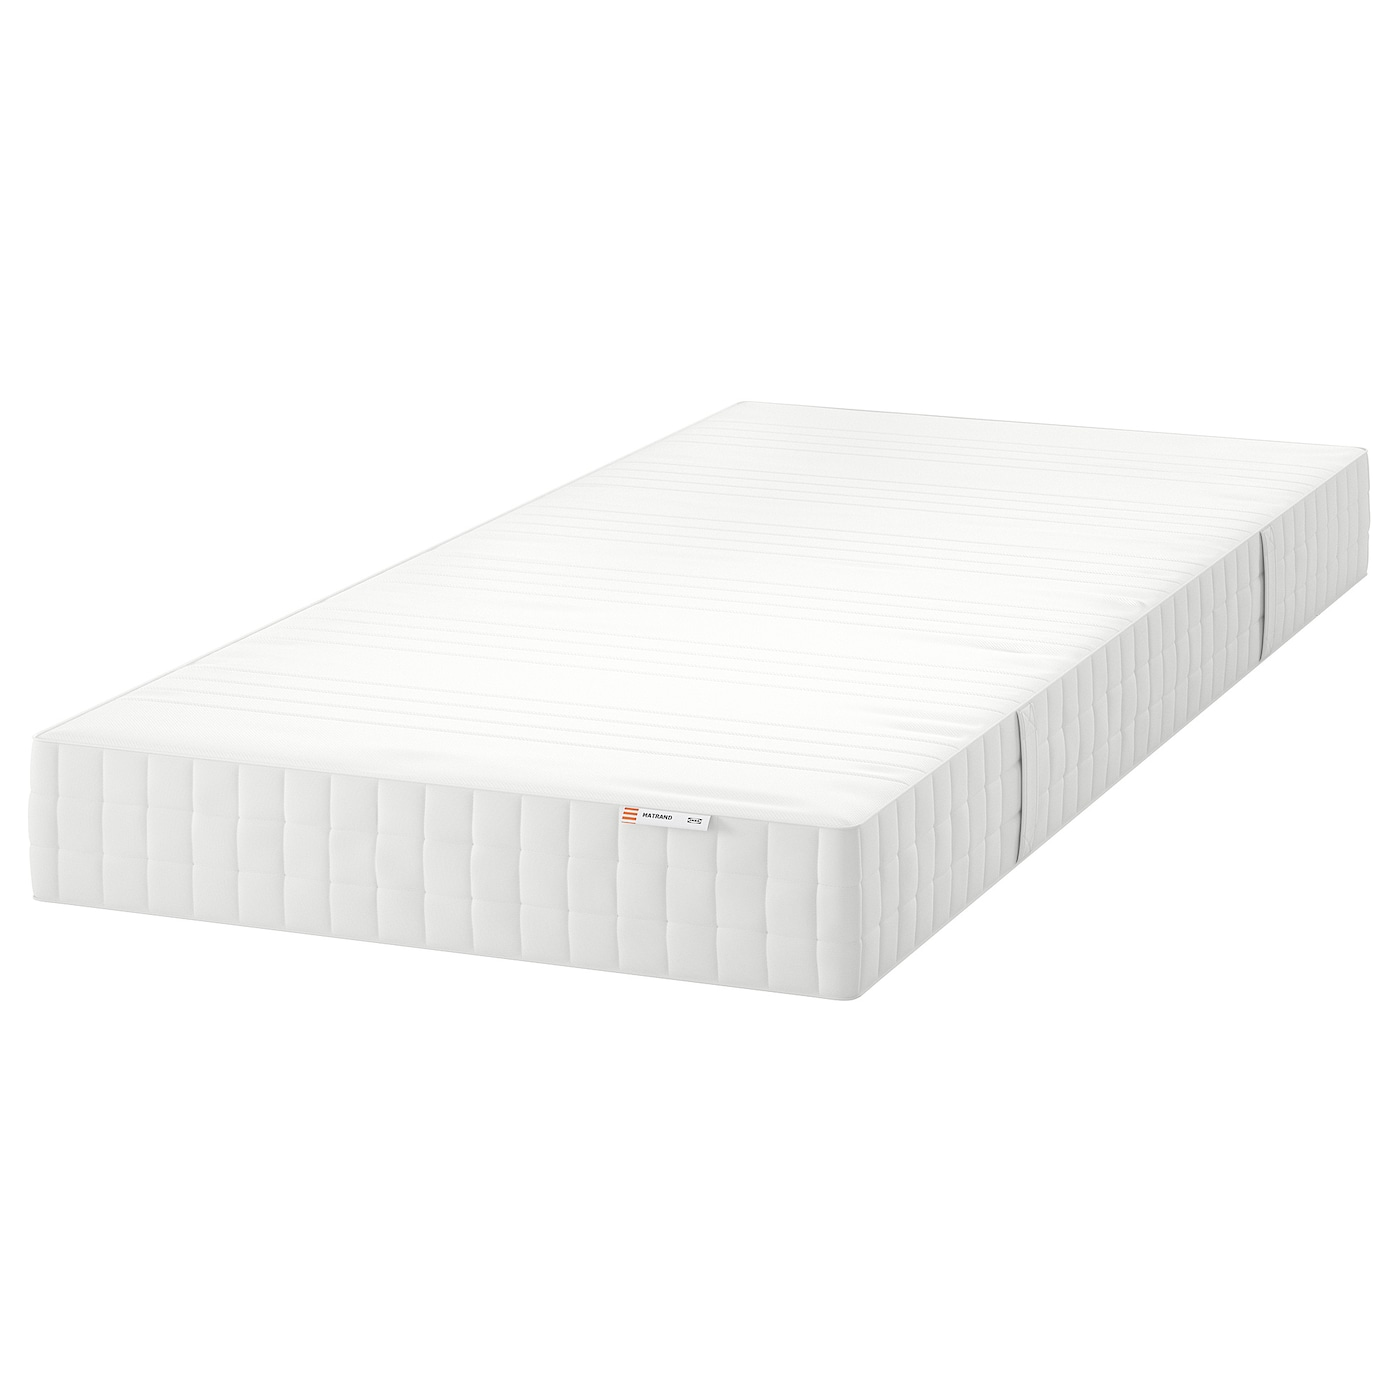 matrand matelas mousse m m de forme ferme blanc 80 x 200 cm ikea. Black Bedroom Furniture Sets. Home Design Ideas